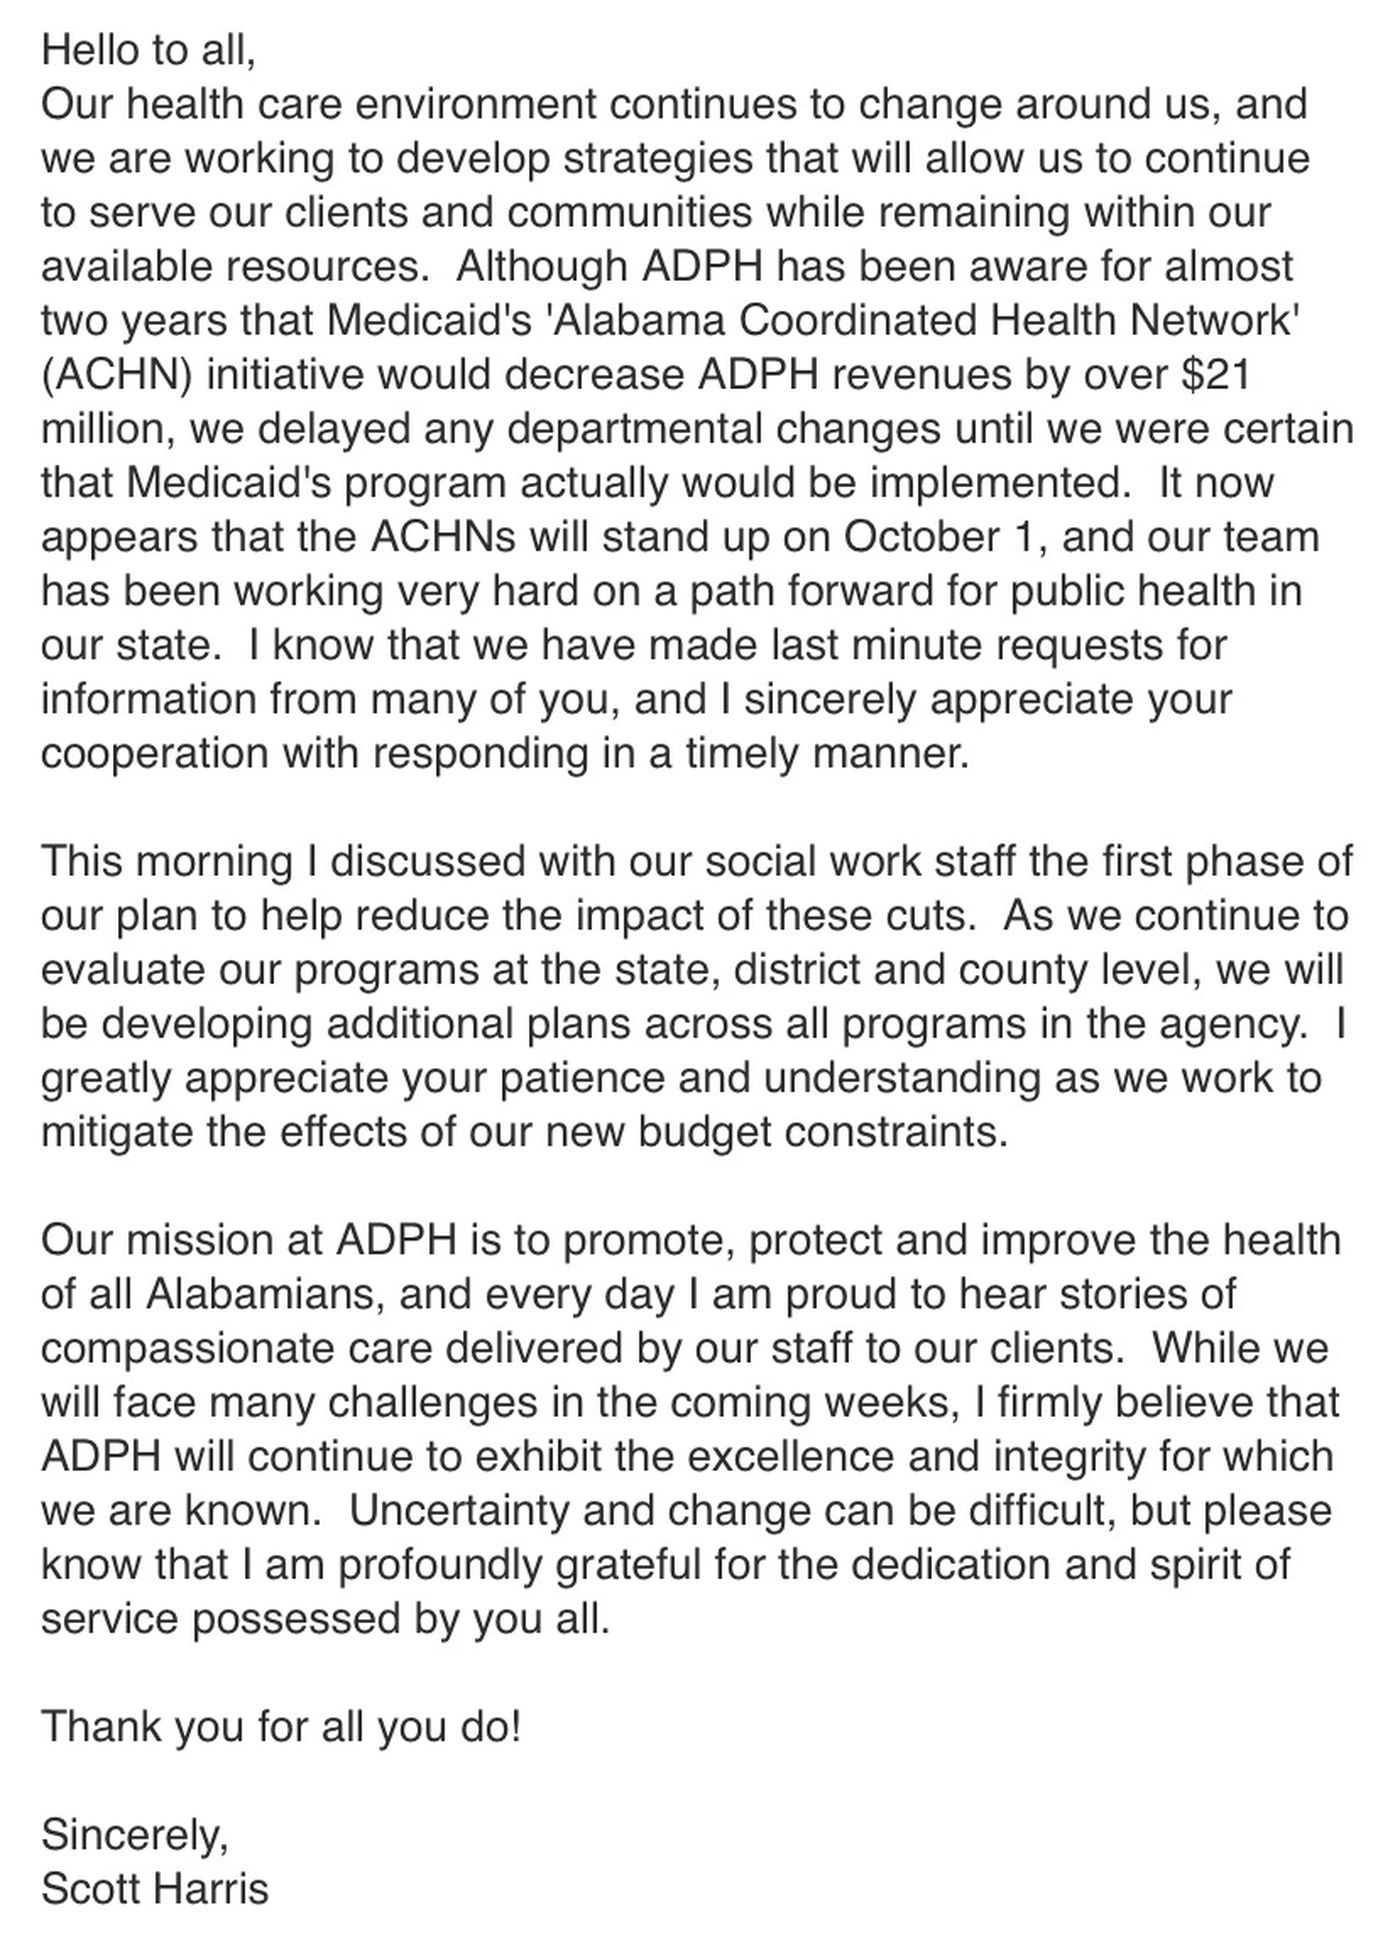 Alabama State Health Officer Dr. Scott Harris sent an email to ADPH employees about budget challenges.